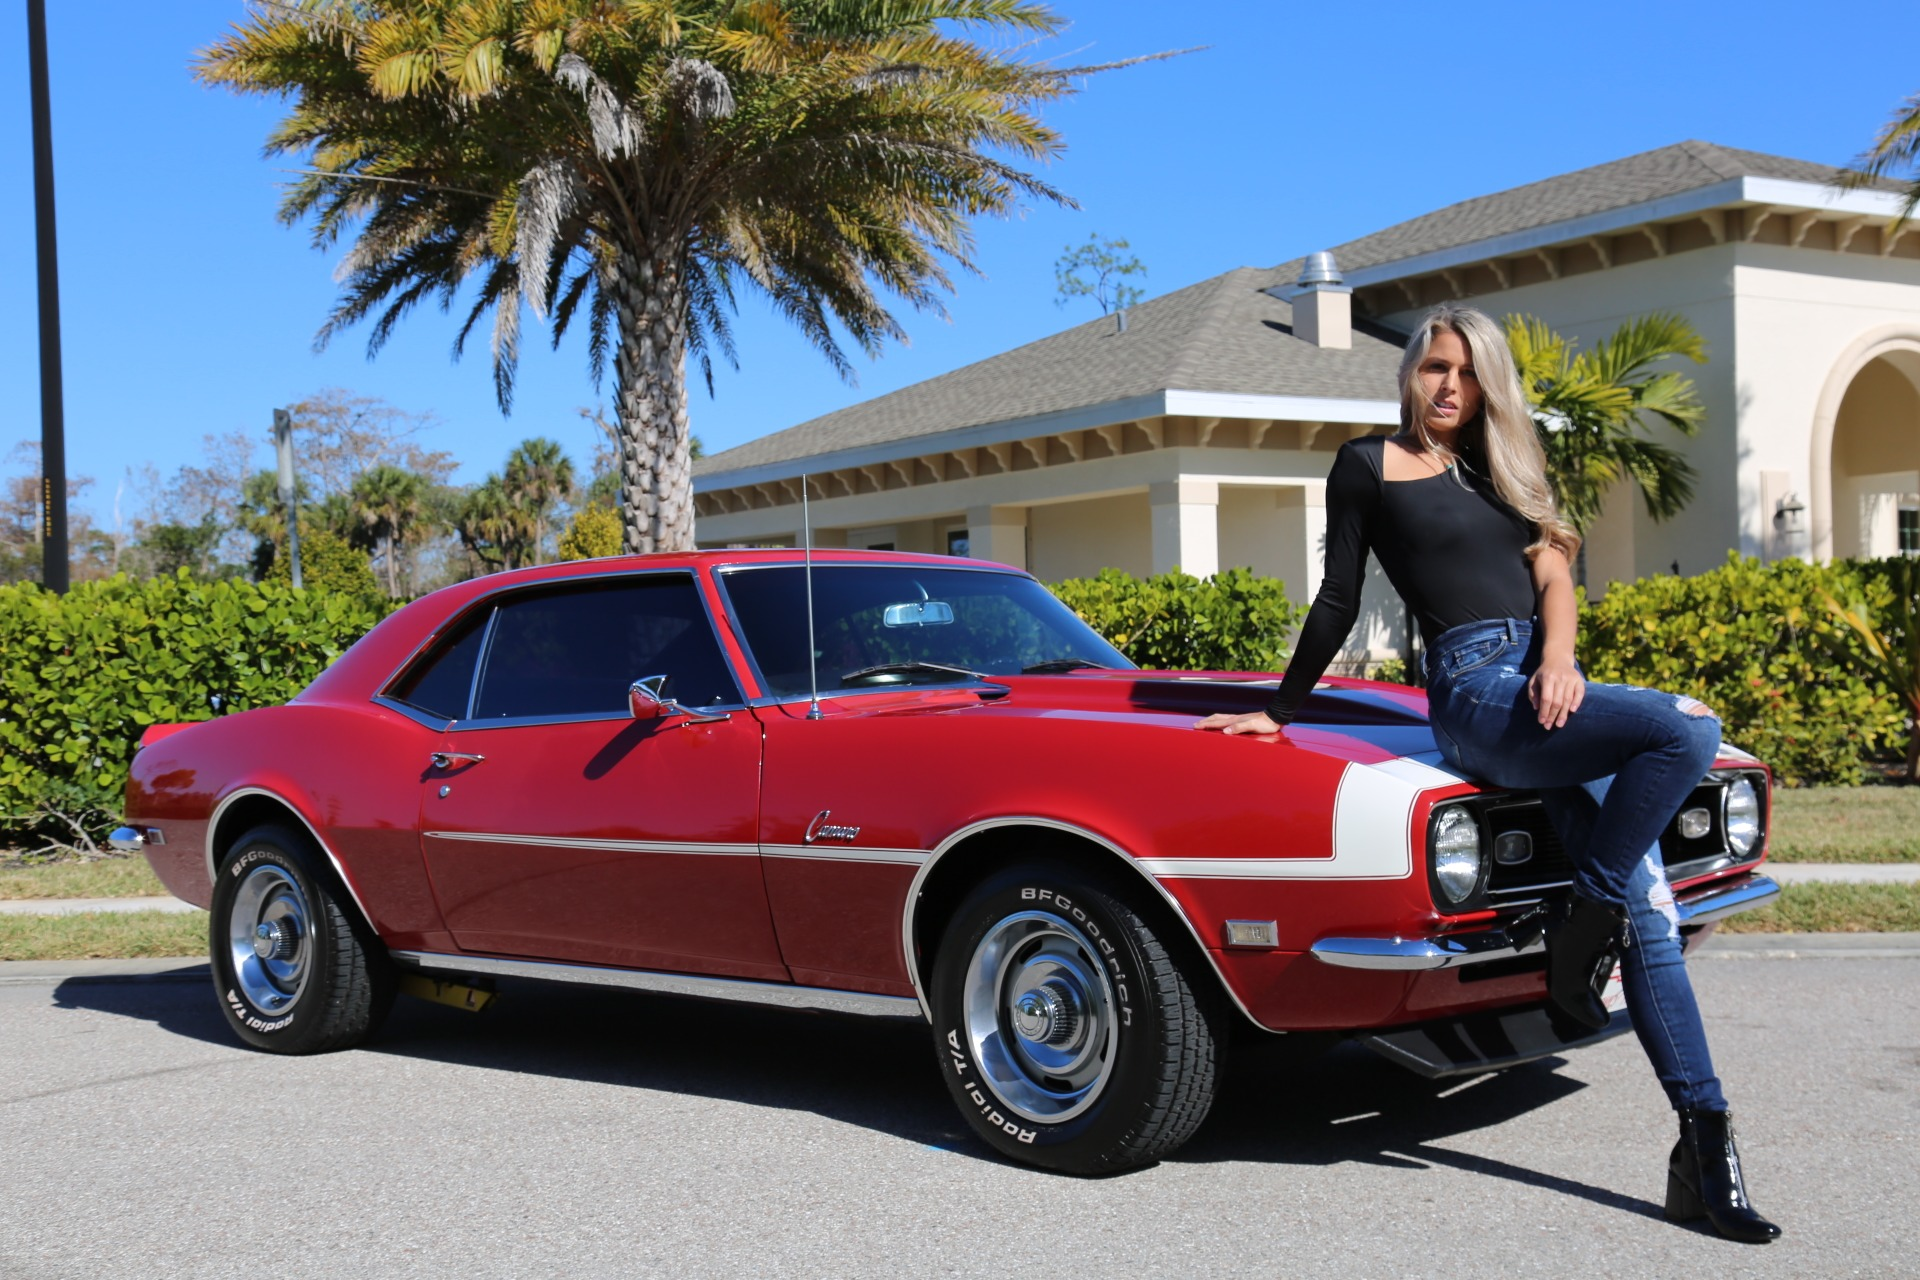 Used 1968 Chevrolet Camaro Camaro V8 350 Auto for sale Sold at Muscle Cars for Sale Inc. in Fort Myers FL 33912 2